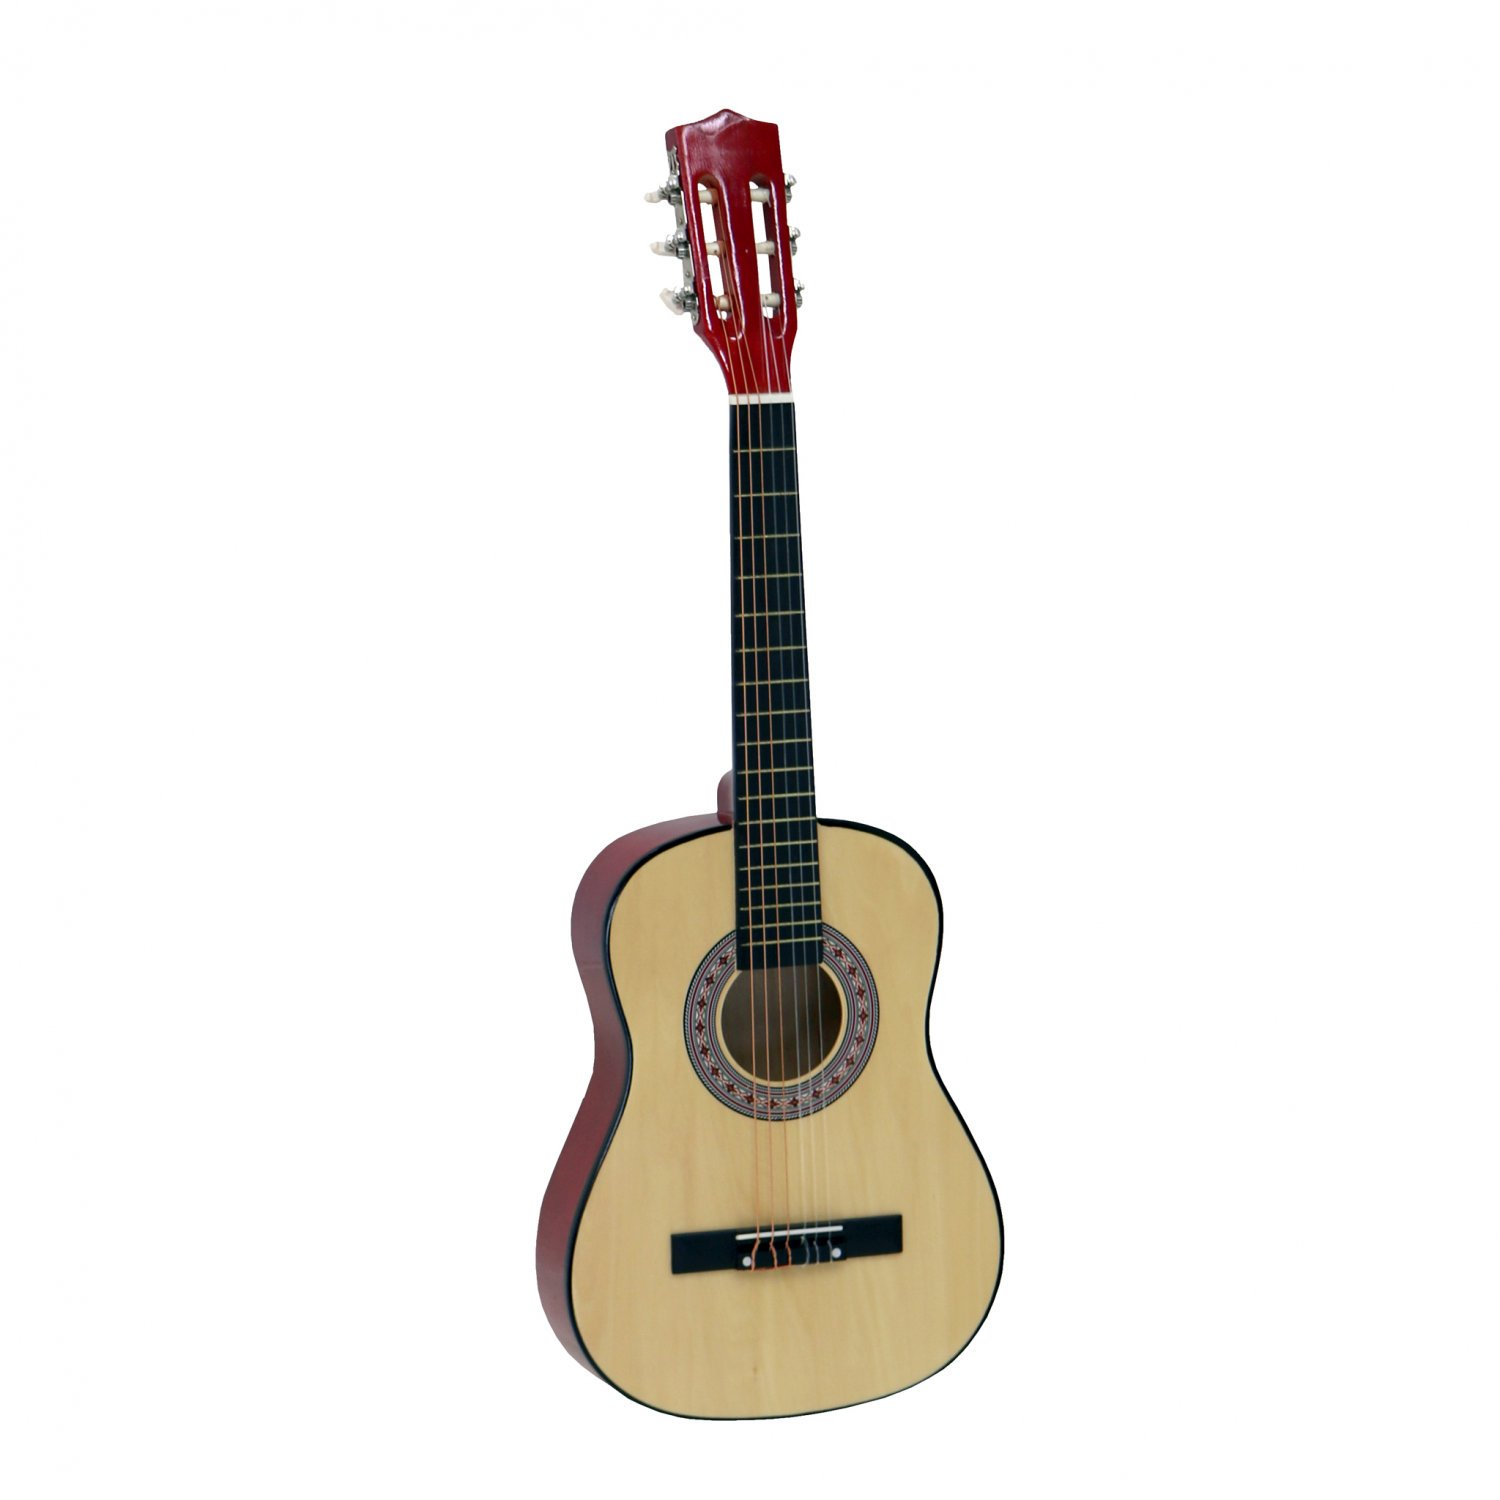 "34"" Half Size 1/2 6 String Classical Acoustic Guitar"